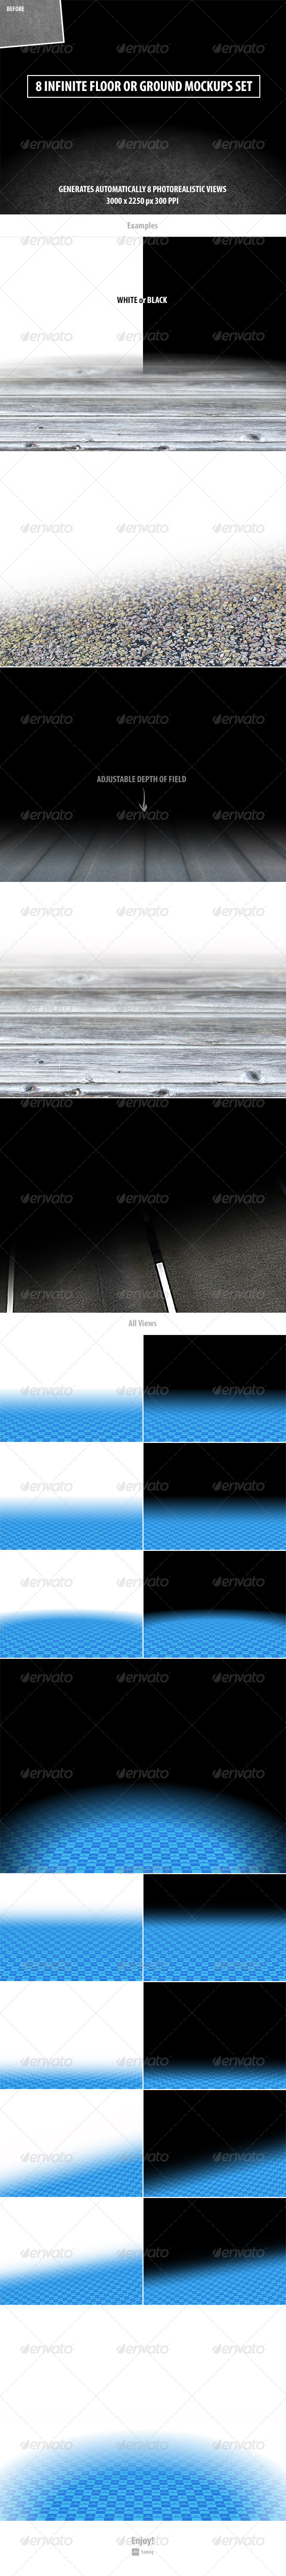 GraphicRiver 8 Infinite Floor or Ground Mockups Set 8505504